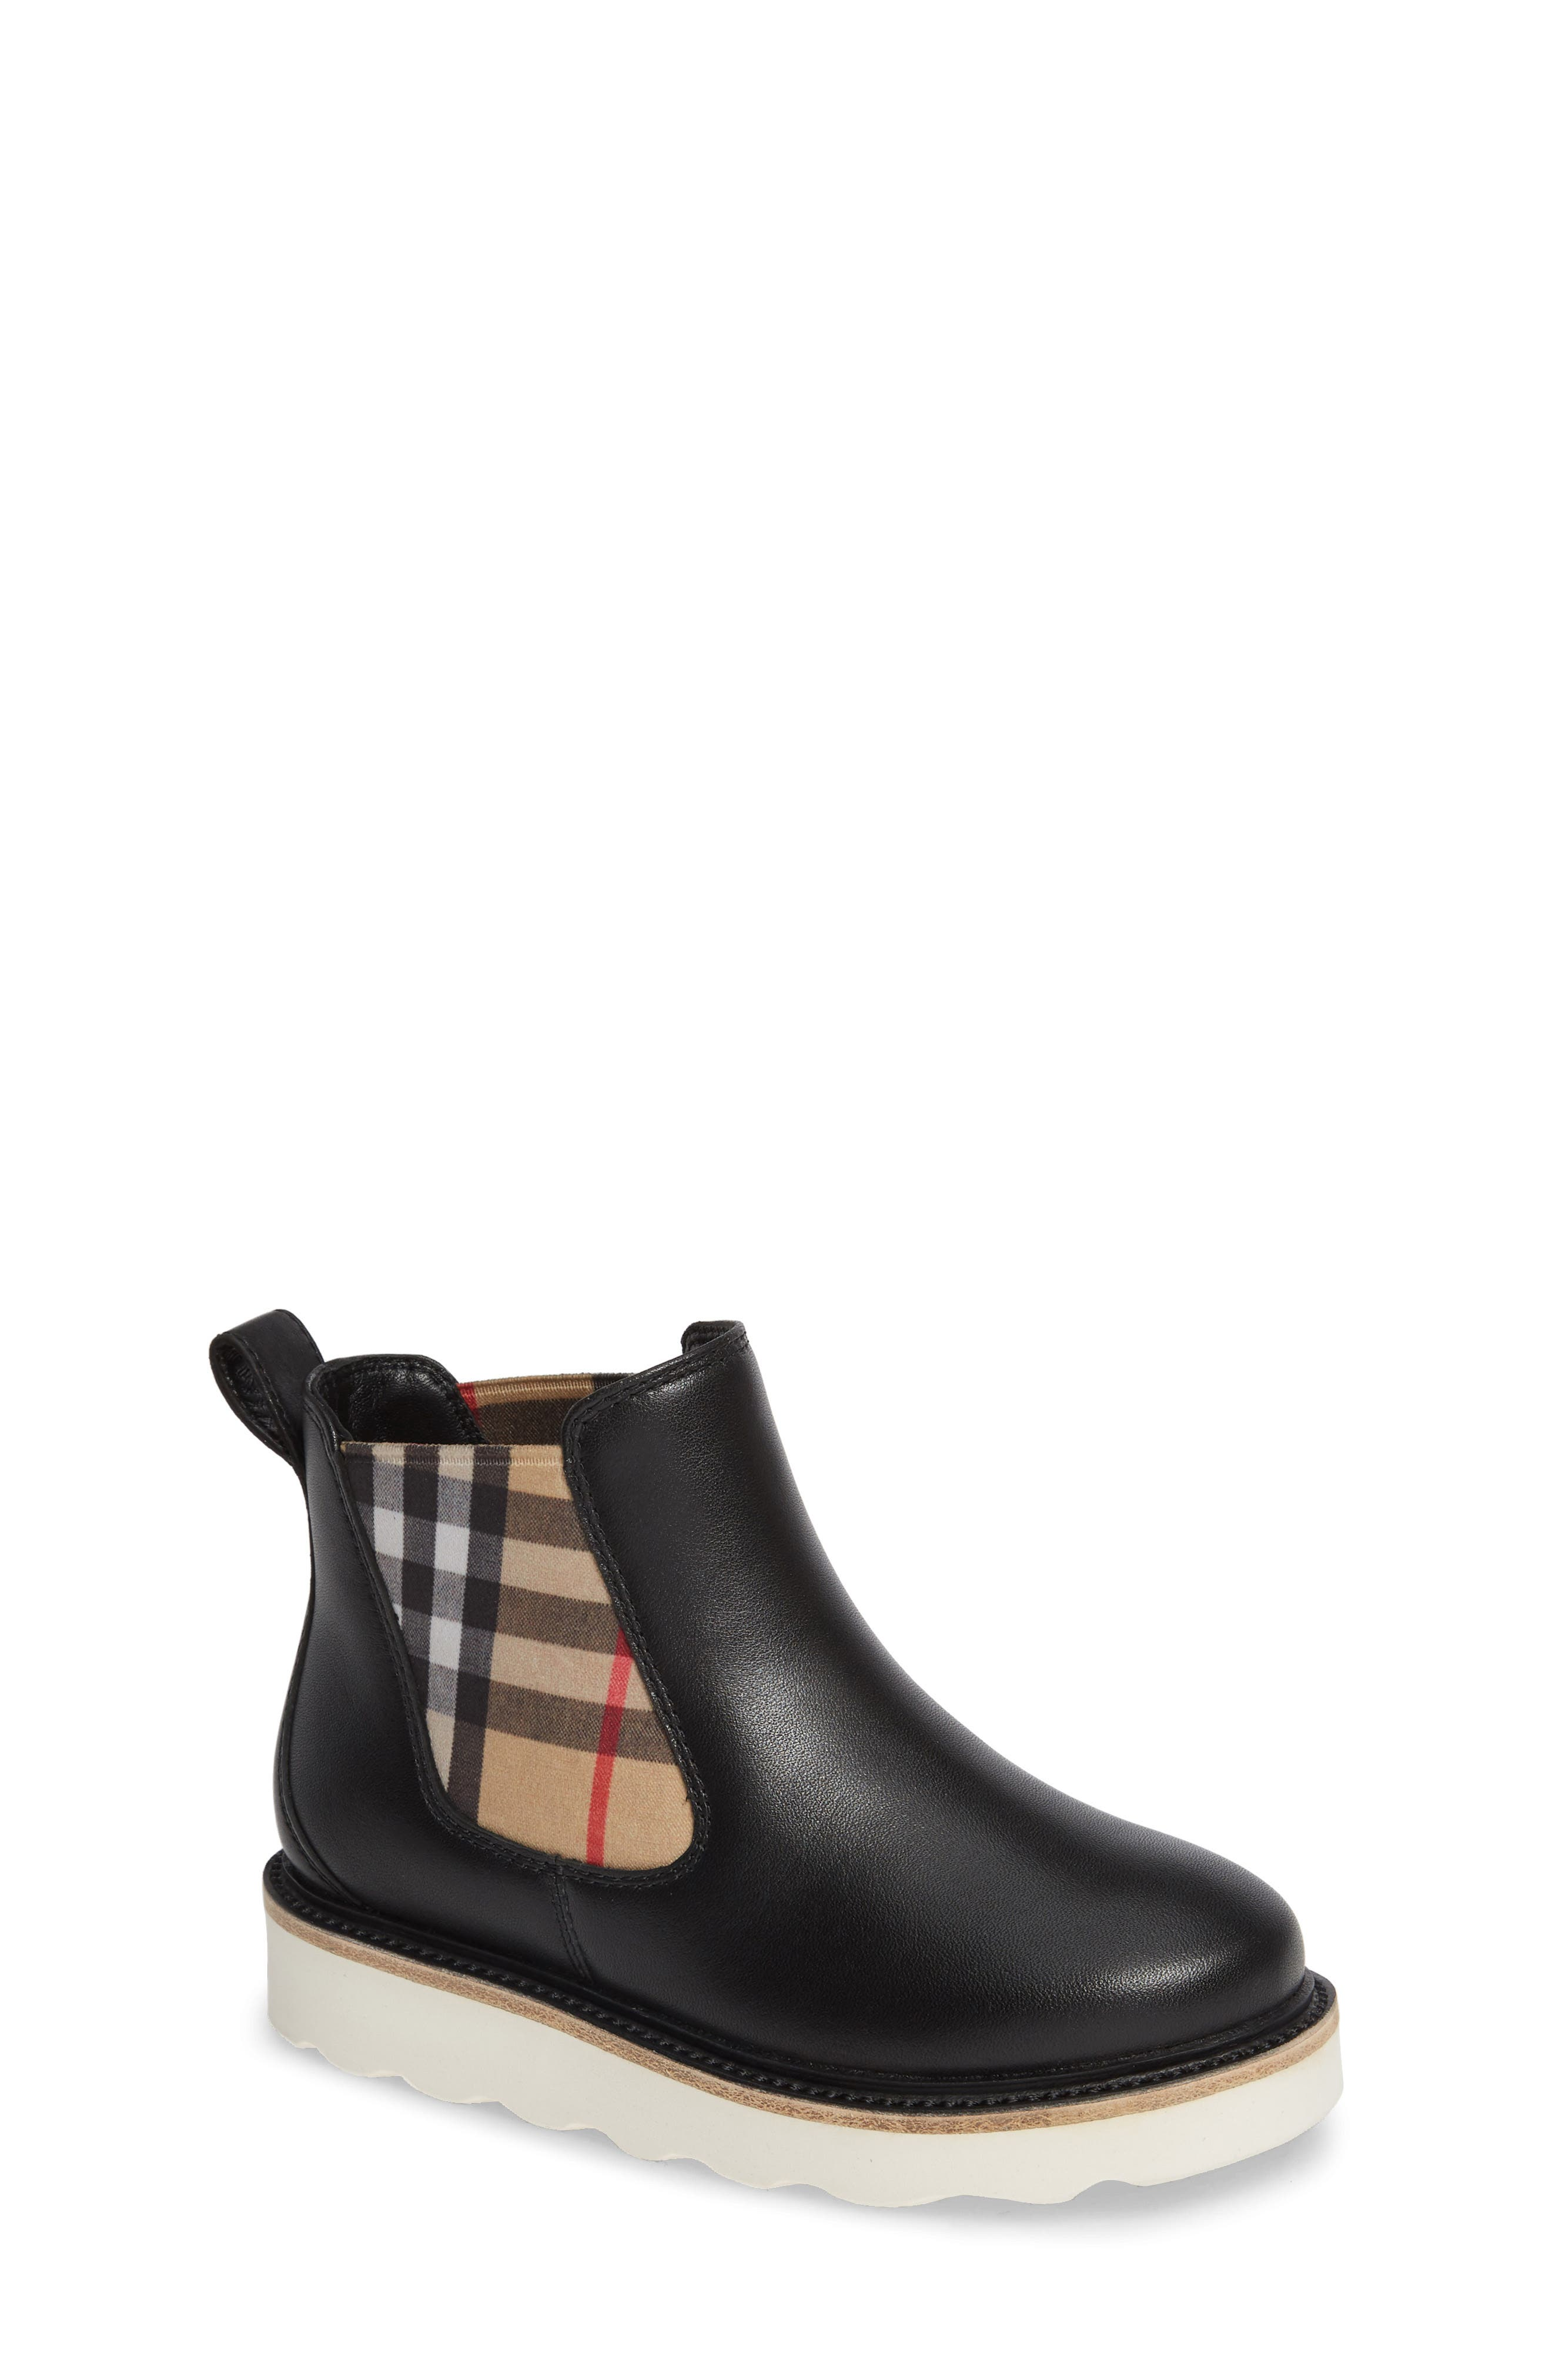 BURBERRY, Hayden Check Chelsea Bootie, Main thumbnail 1, color, BLACK